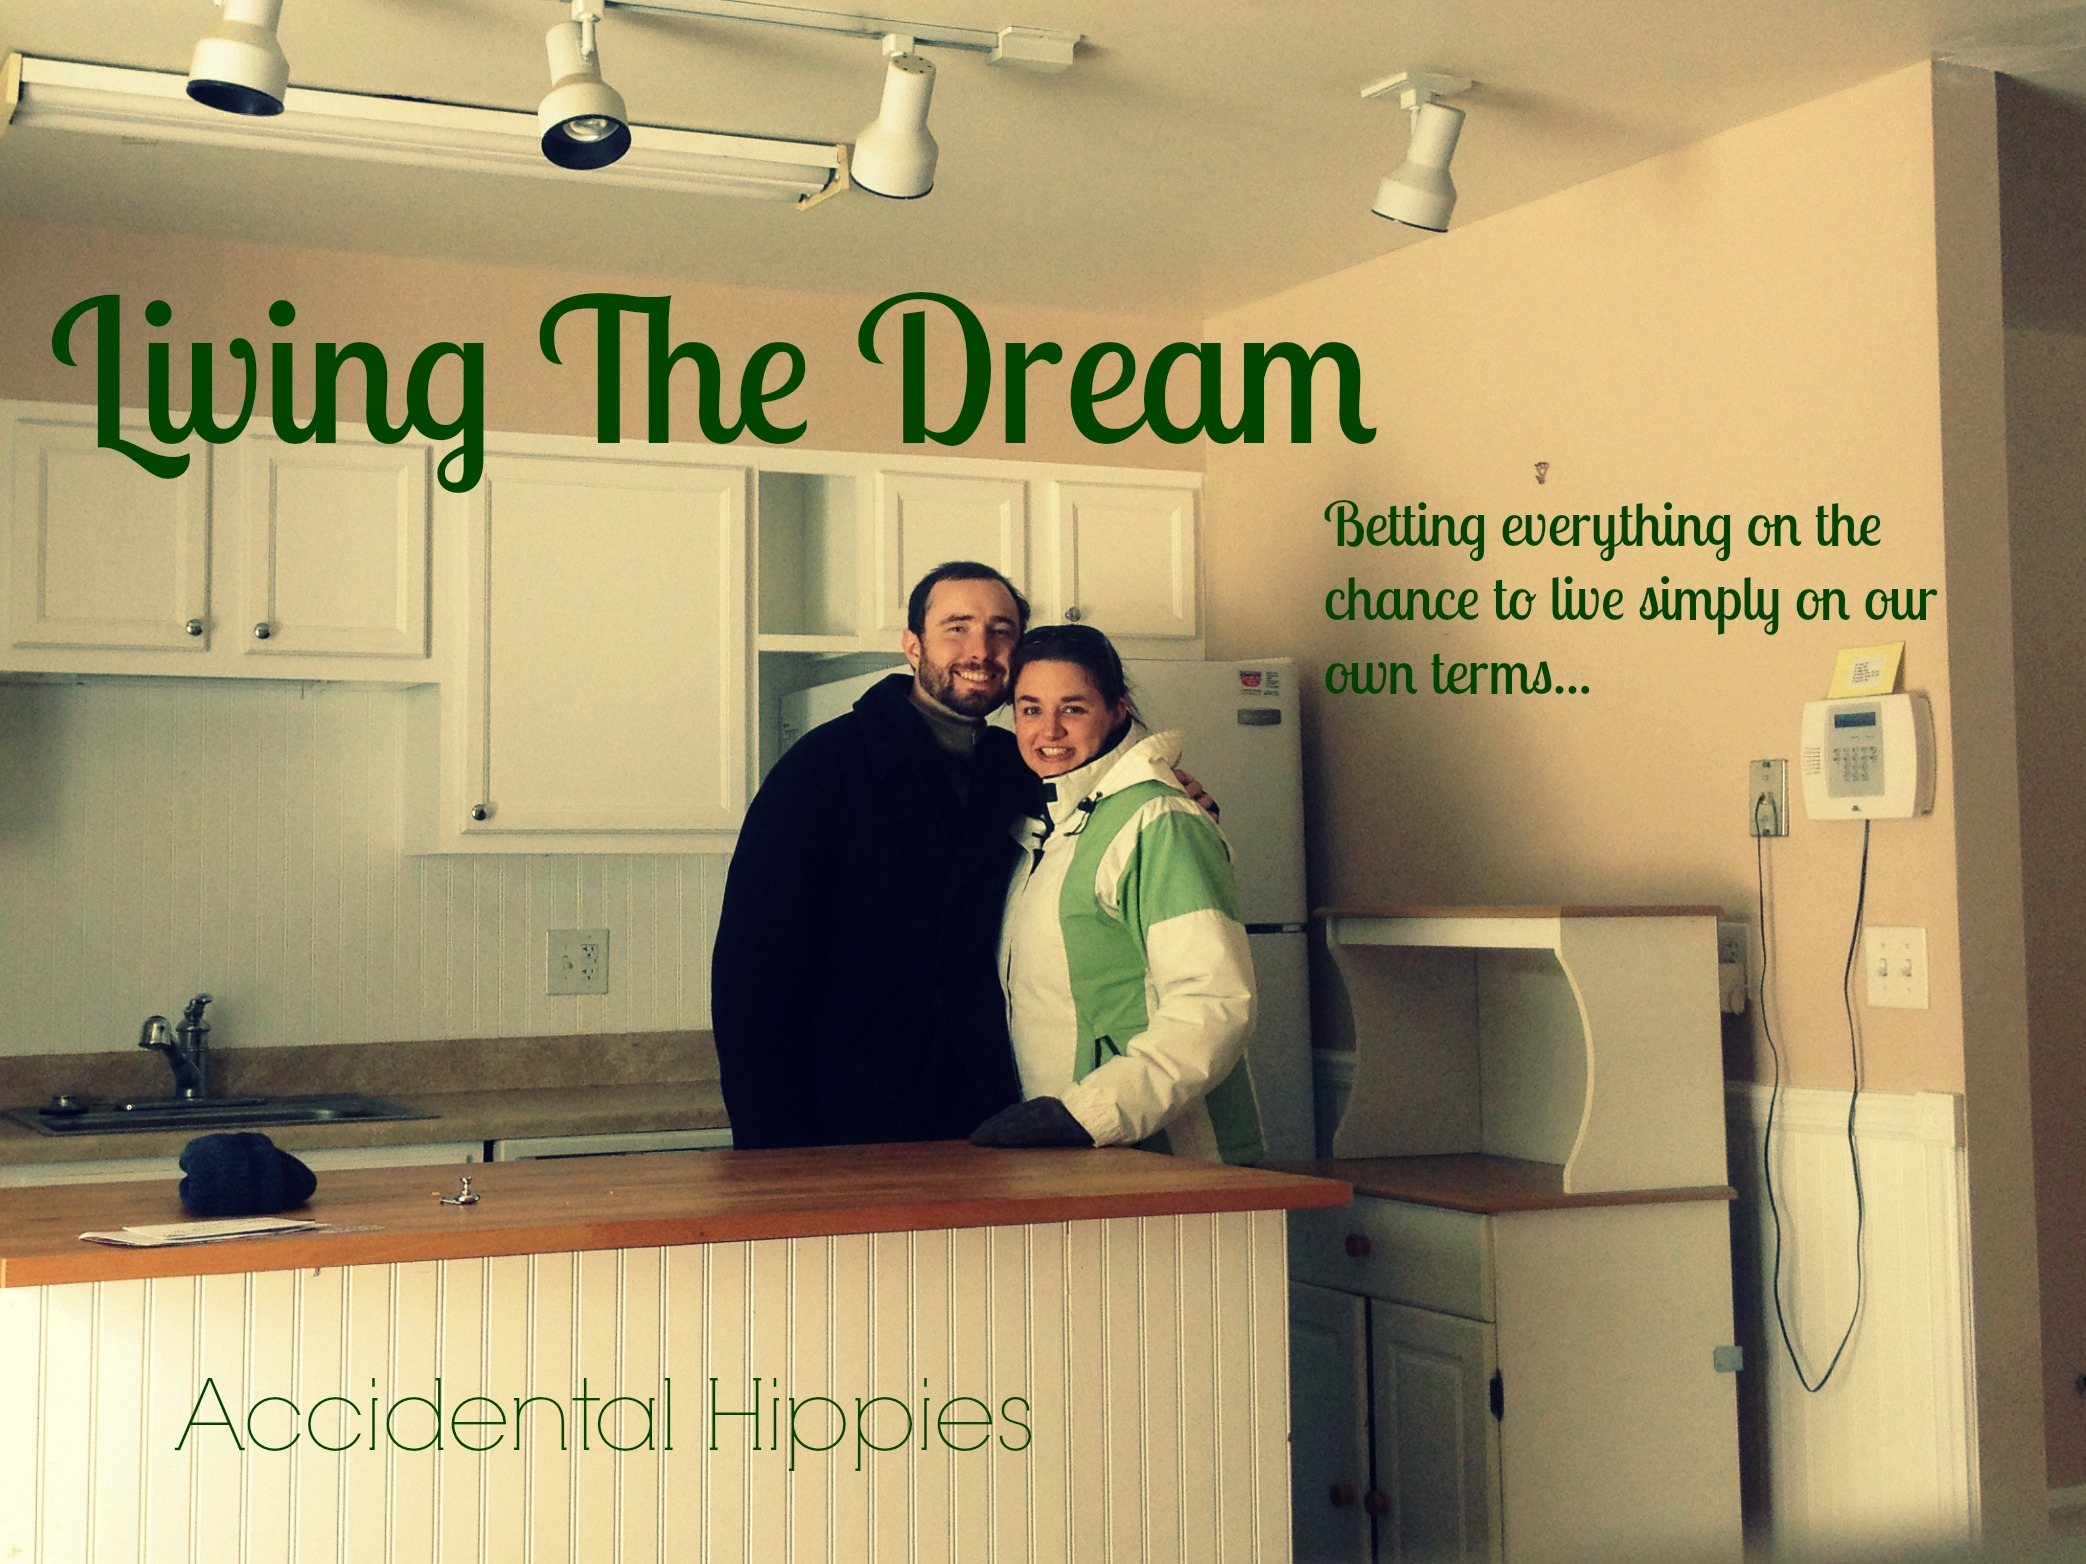 This is Where Things Get Interesting - Accidental Hippies